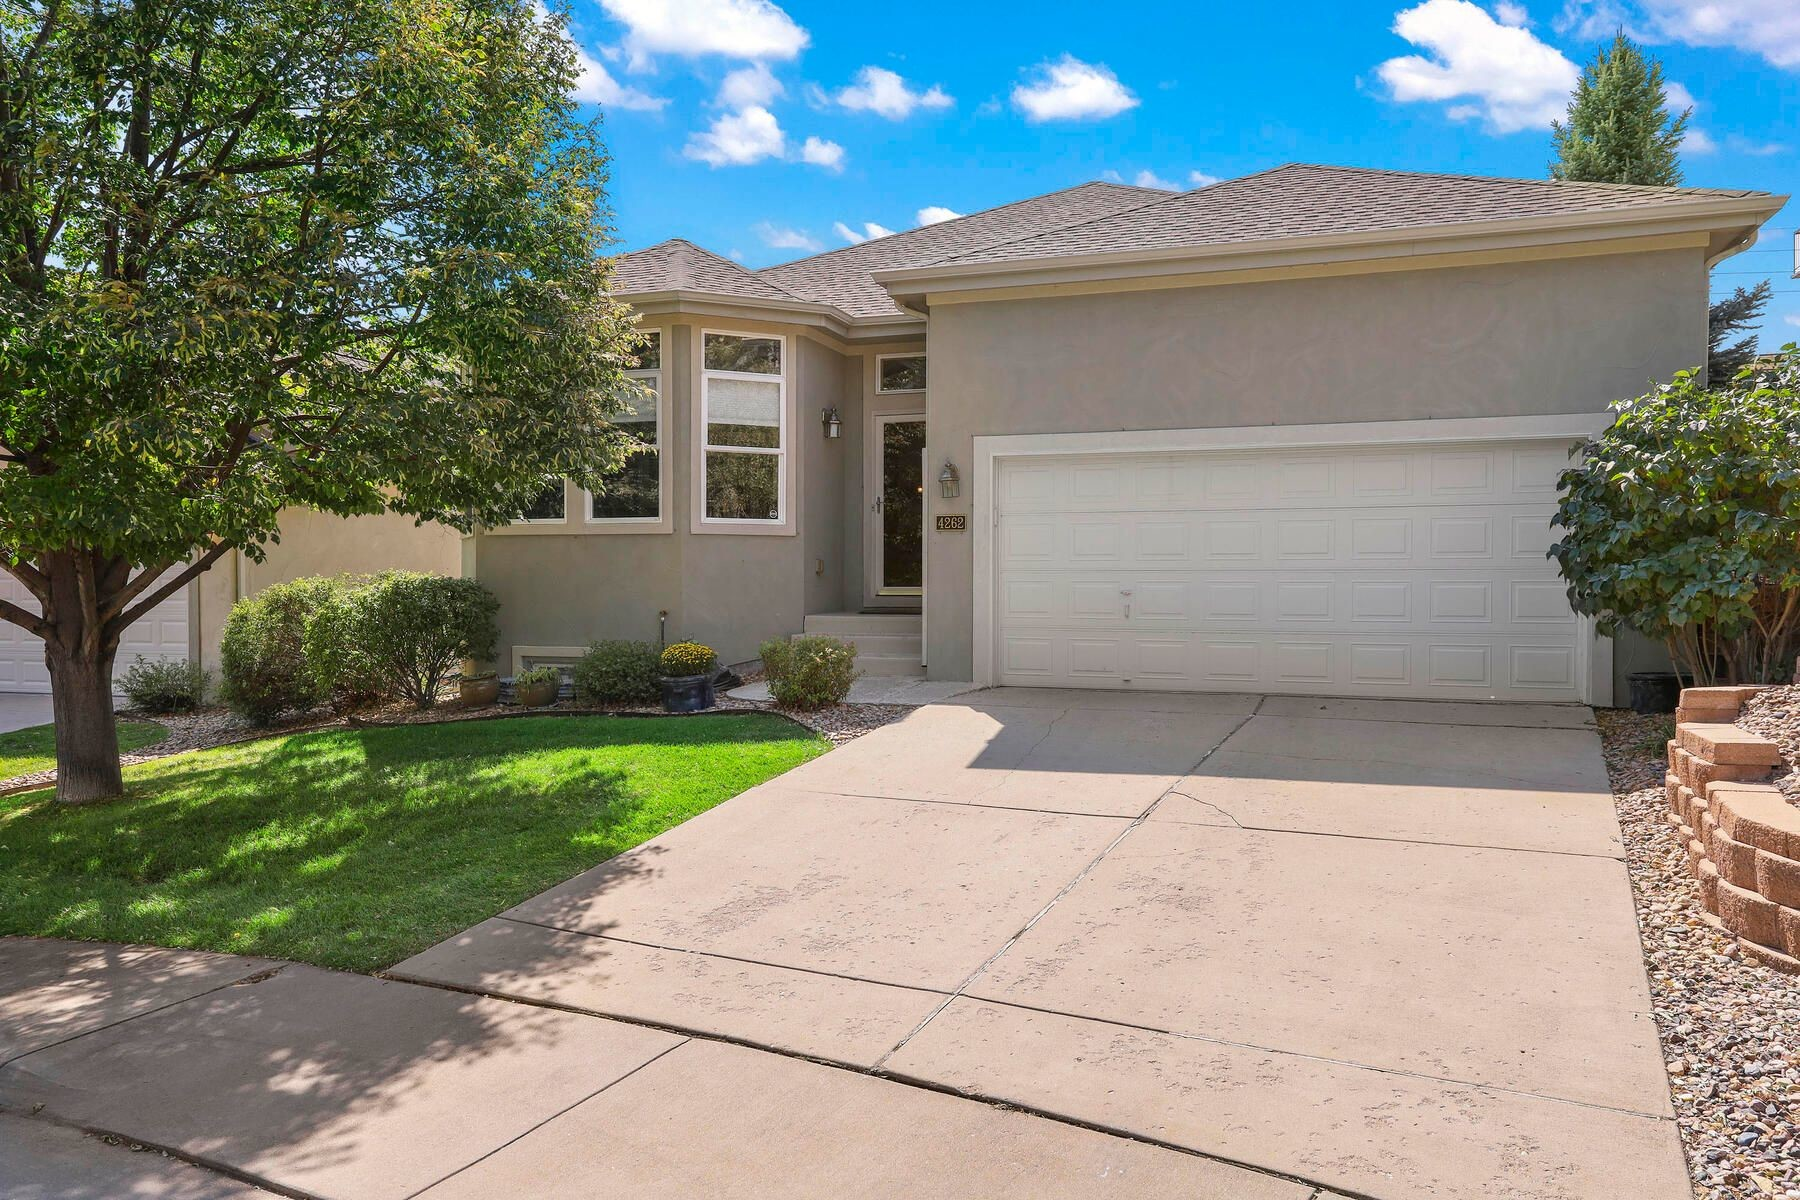 3-Bedroom House In The Fairways Of South Suburban